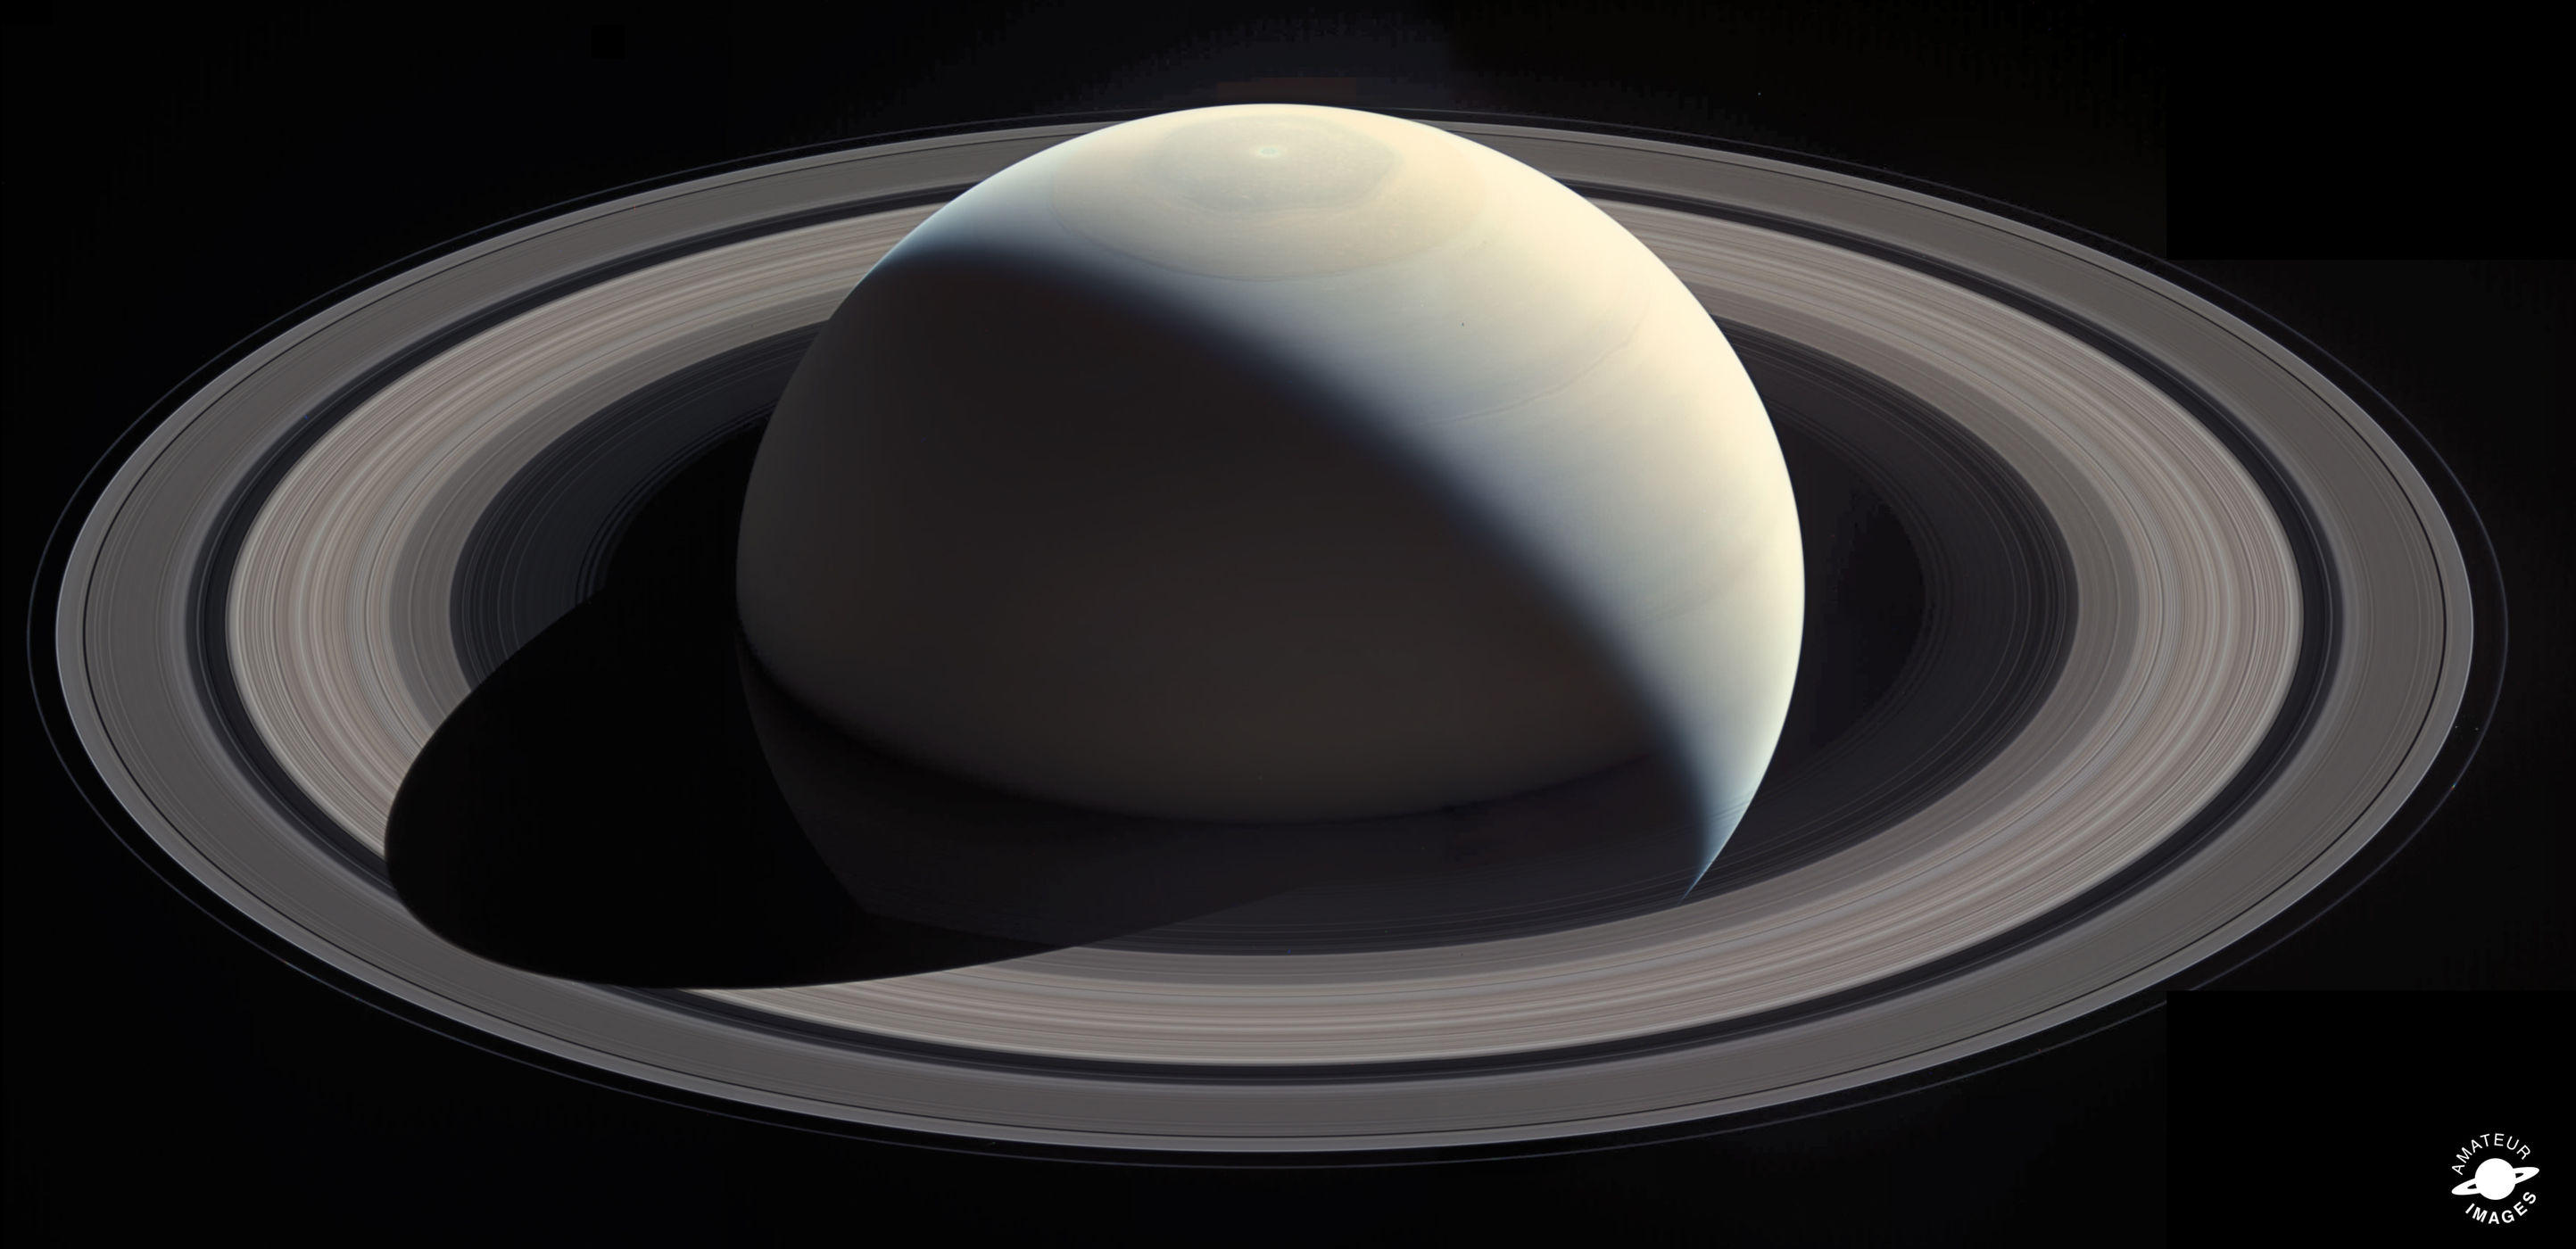 essay on saturn and rings Saturn is the sixth planet from the sun and the second largest planet in the solar system, after jupiter saturn is a gas giant with an average radius about.